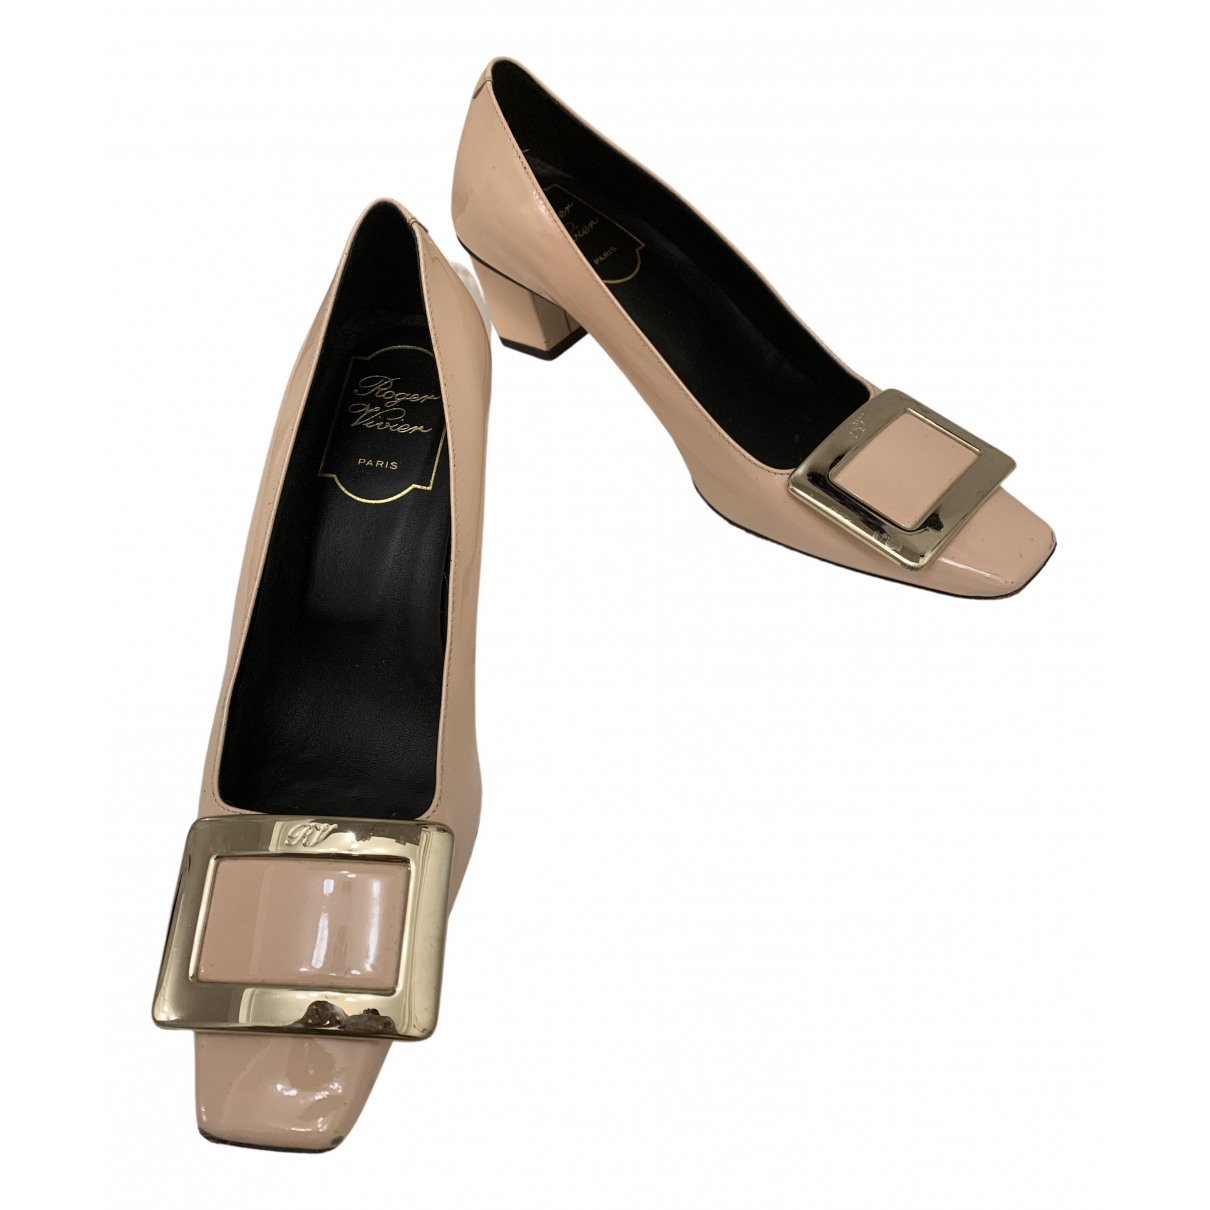 Roger Vivier Belle Vivier Beige Leather Heels for Women 34 EU